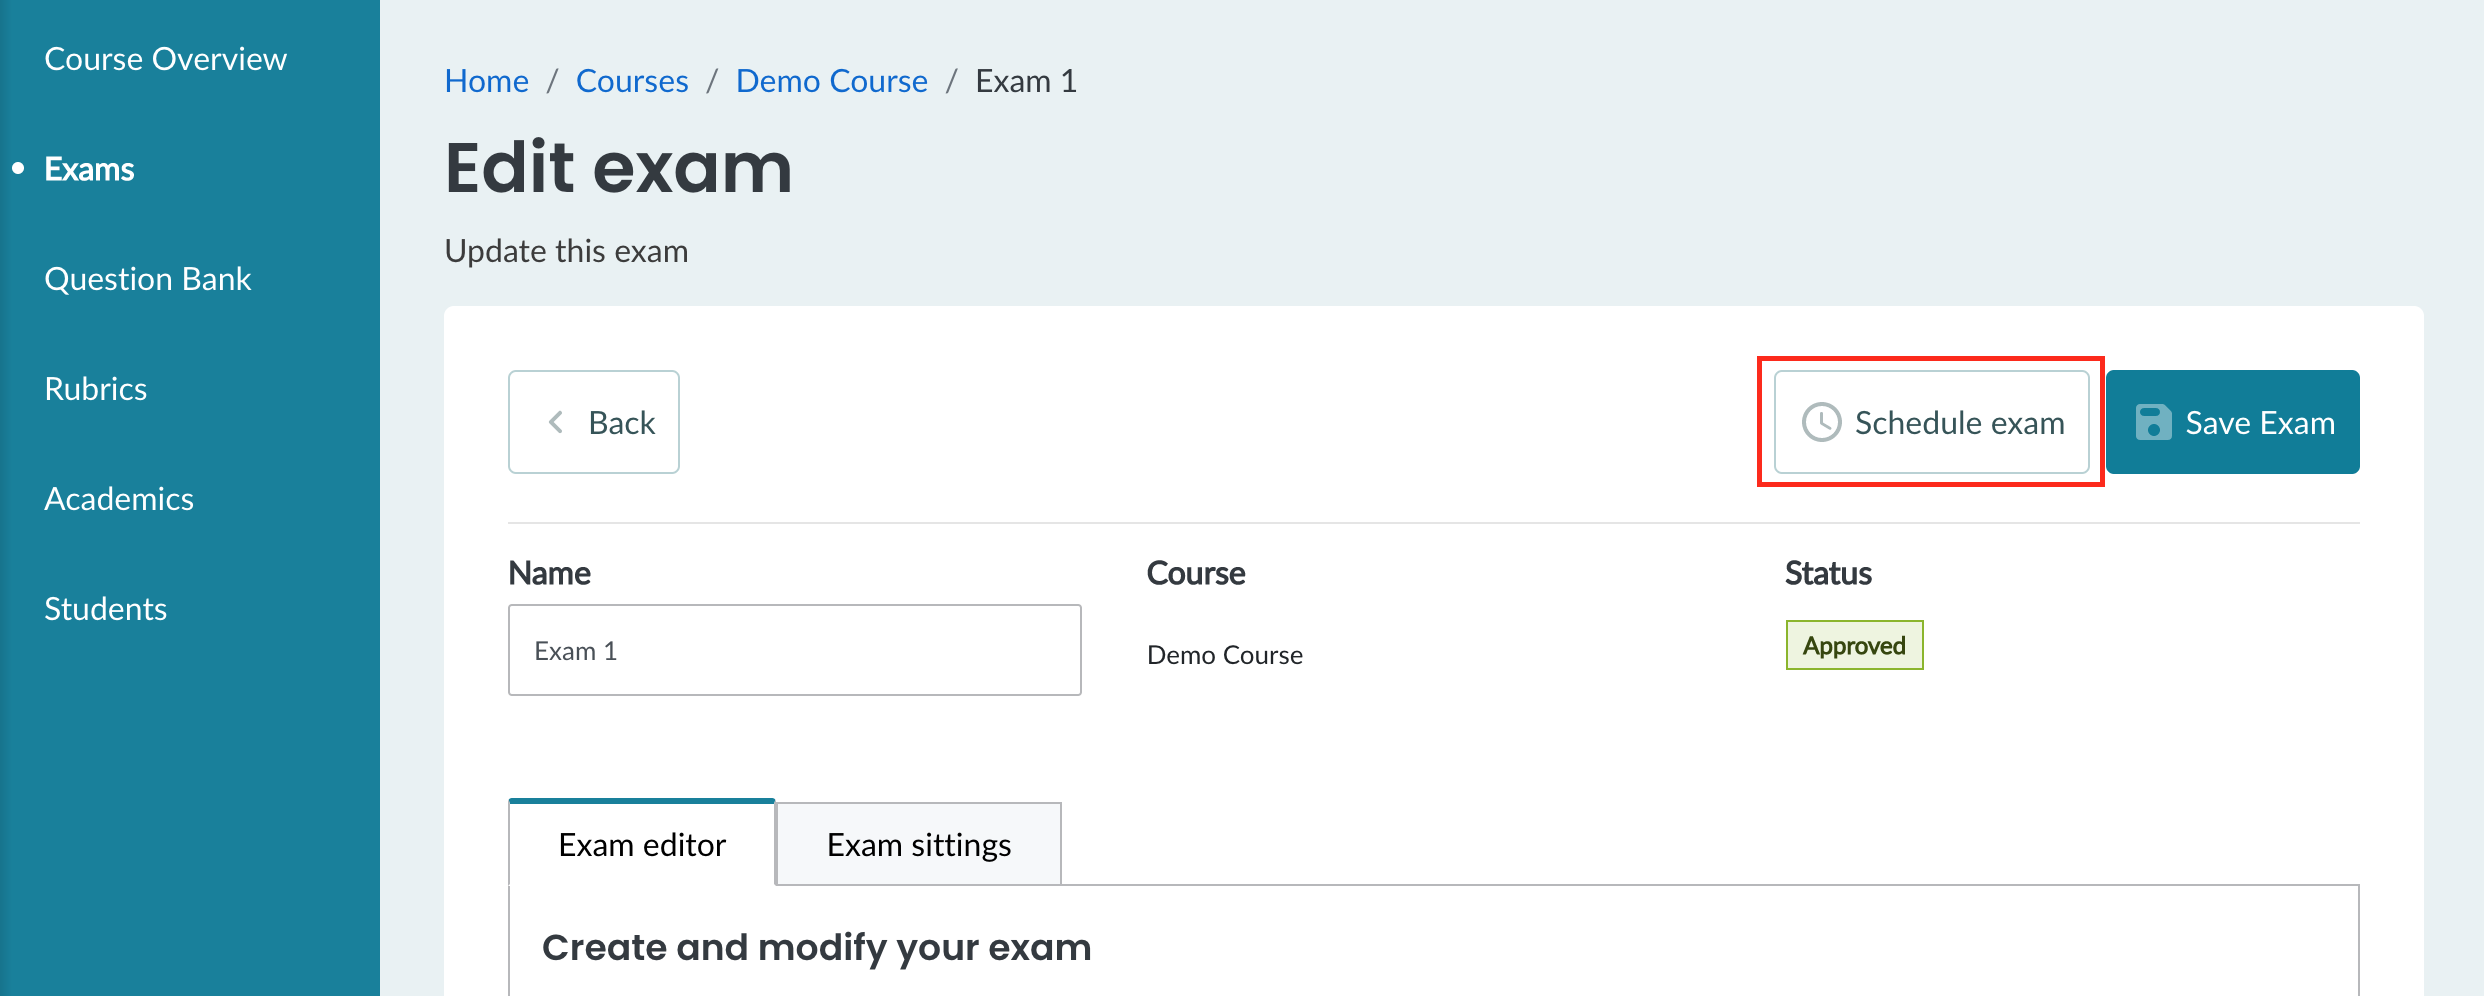 An approved exam with a 'Schedule exam' button